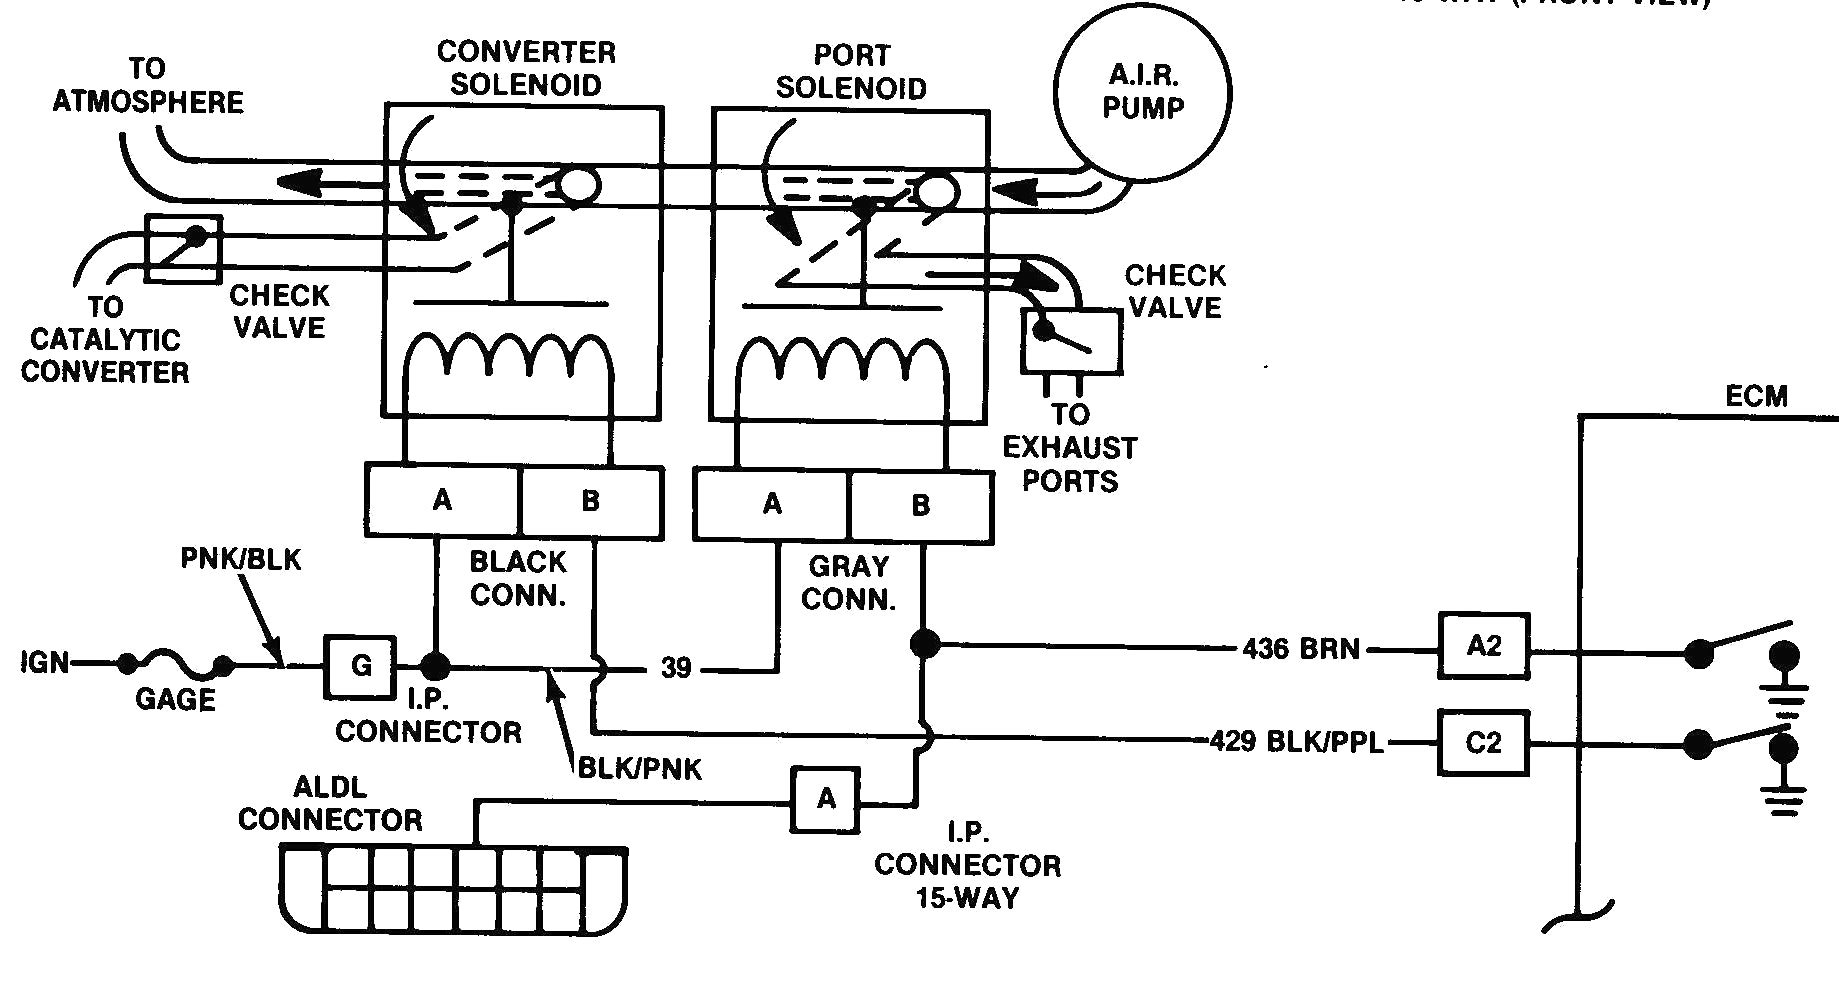 [DIAGRAM] 12v Solenoid Valve Wiring Diagram FULL Version